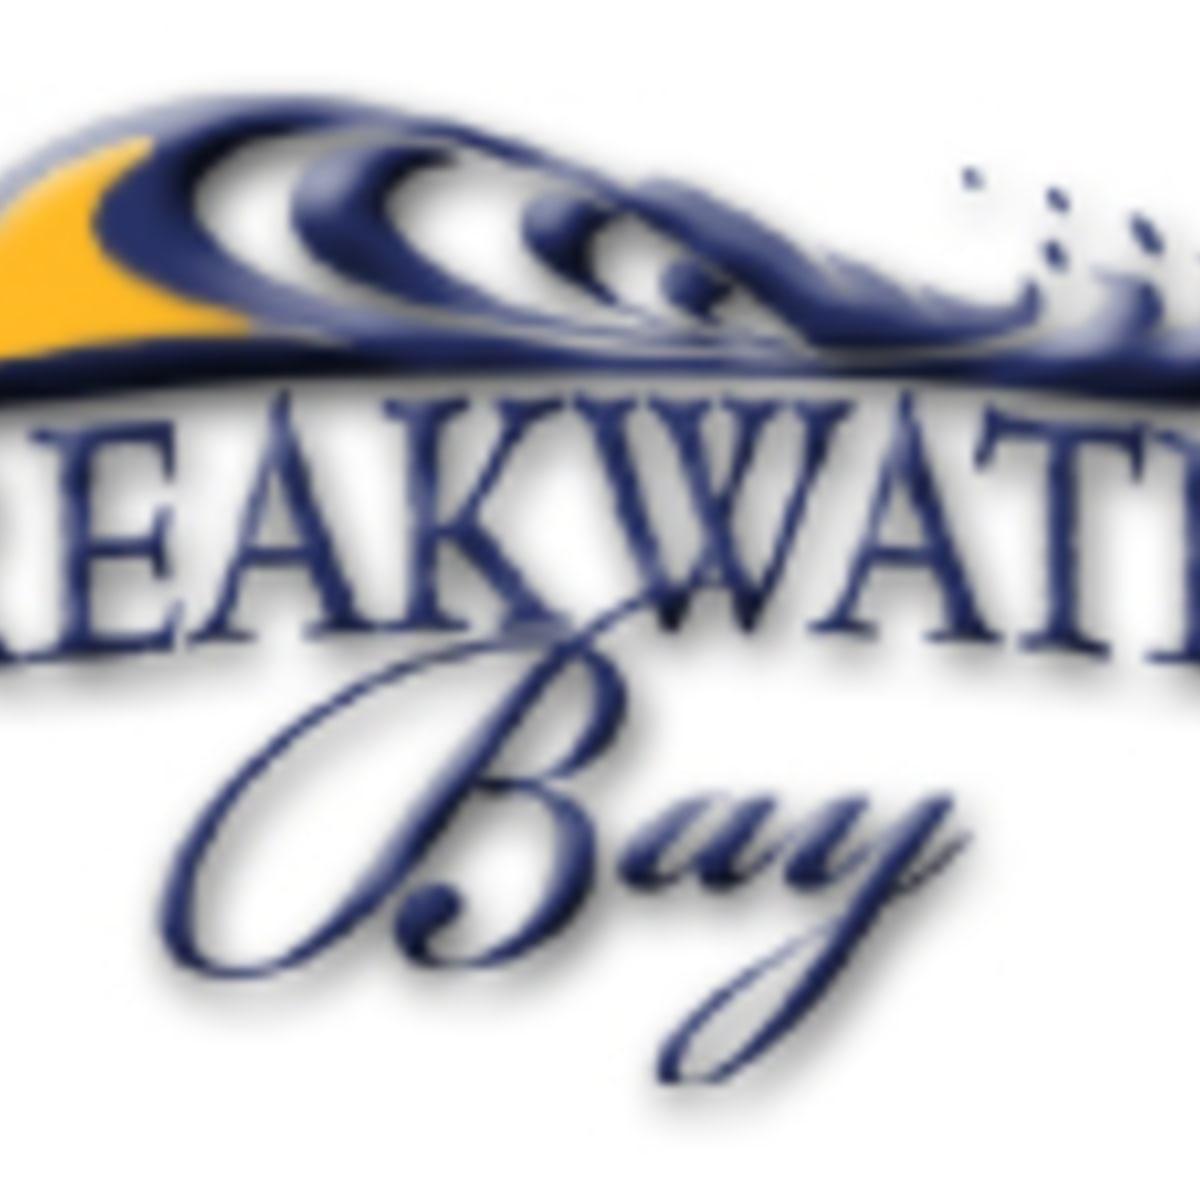 Breakwater Apartments: Apartments For Rent In Beaumont, TX